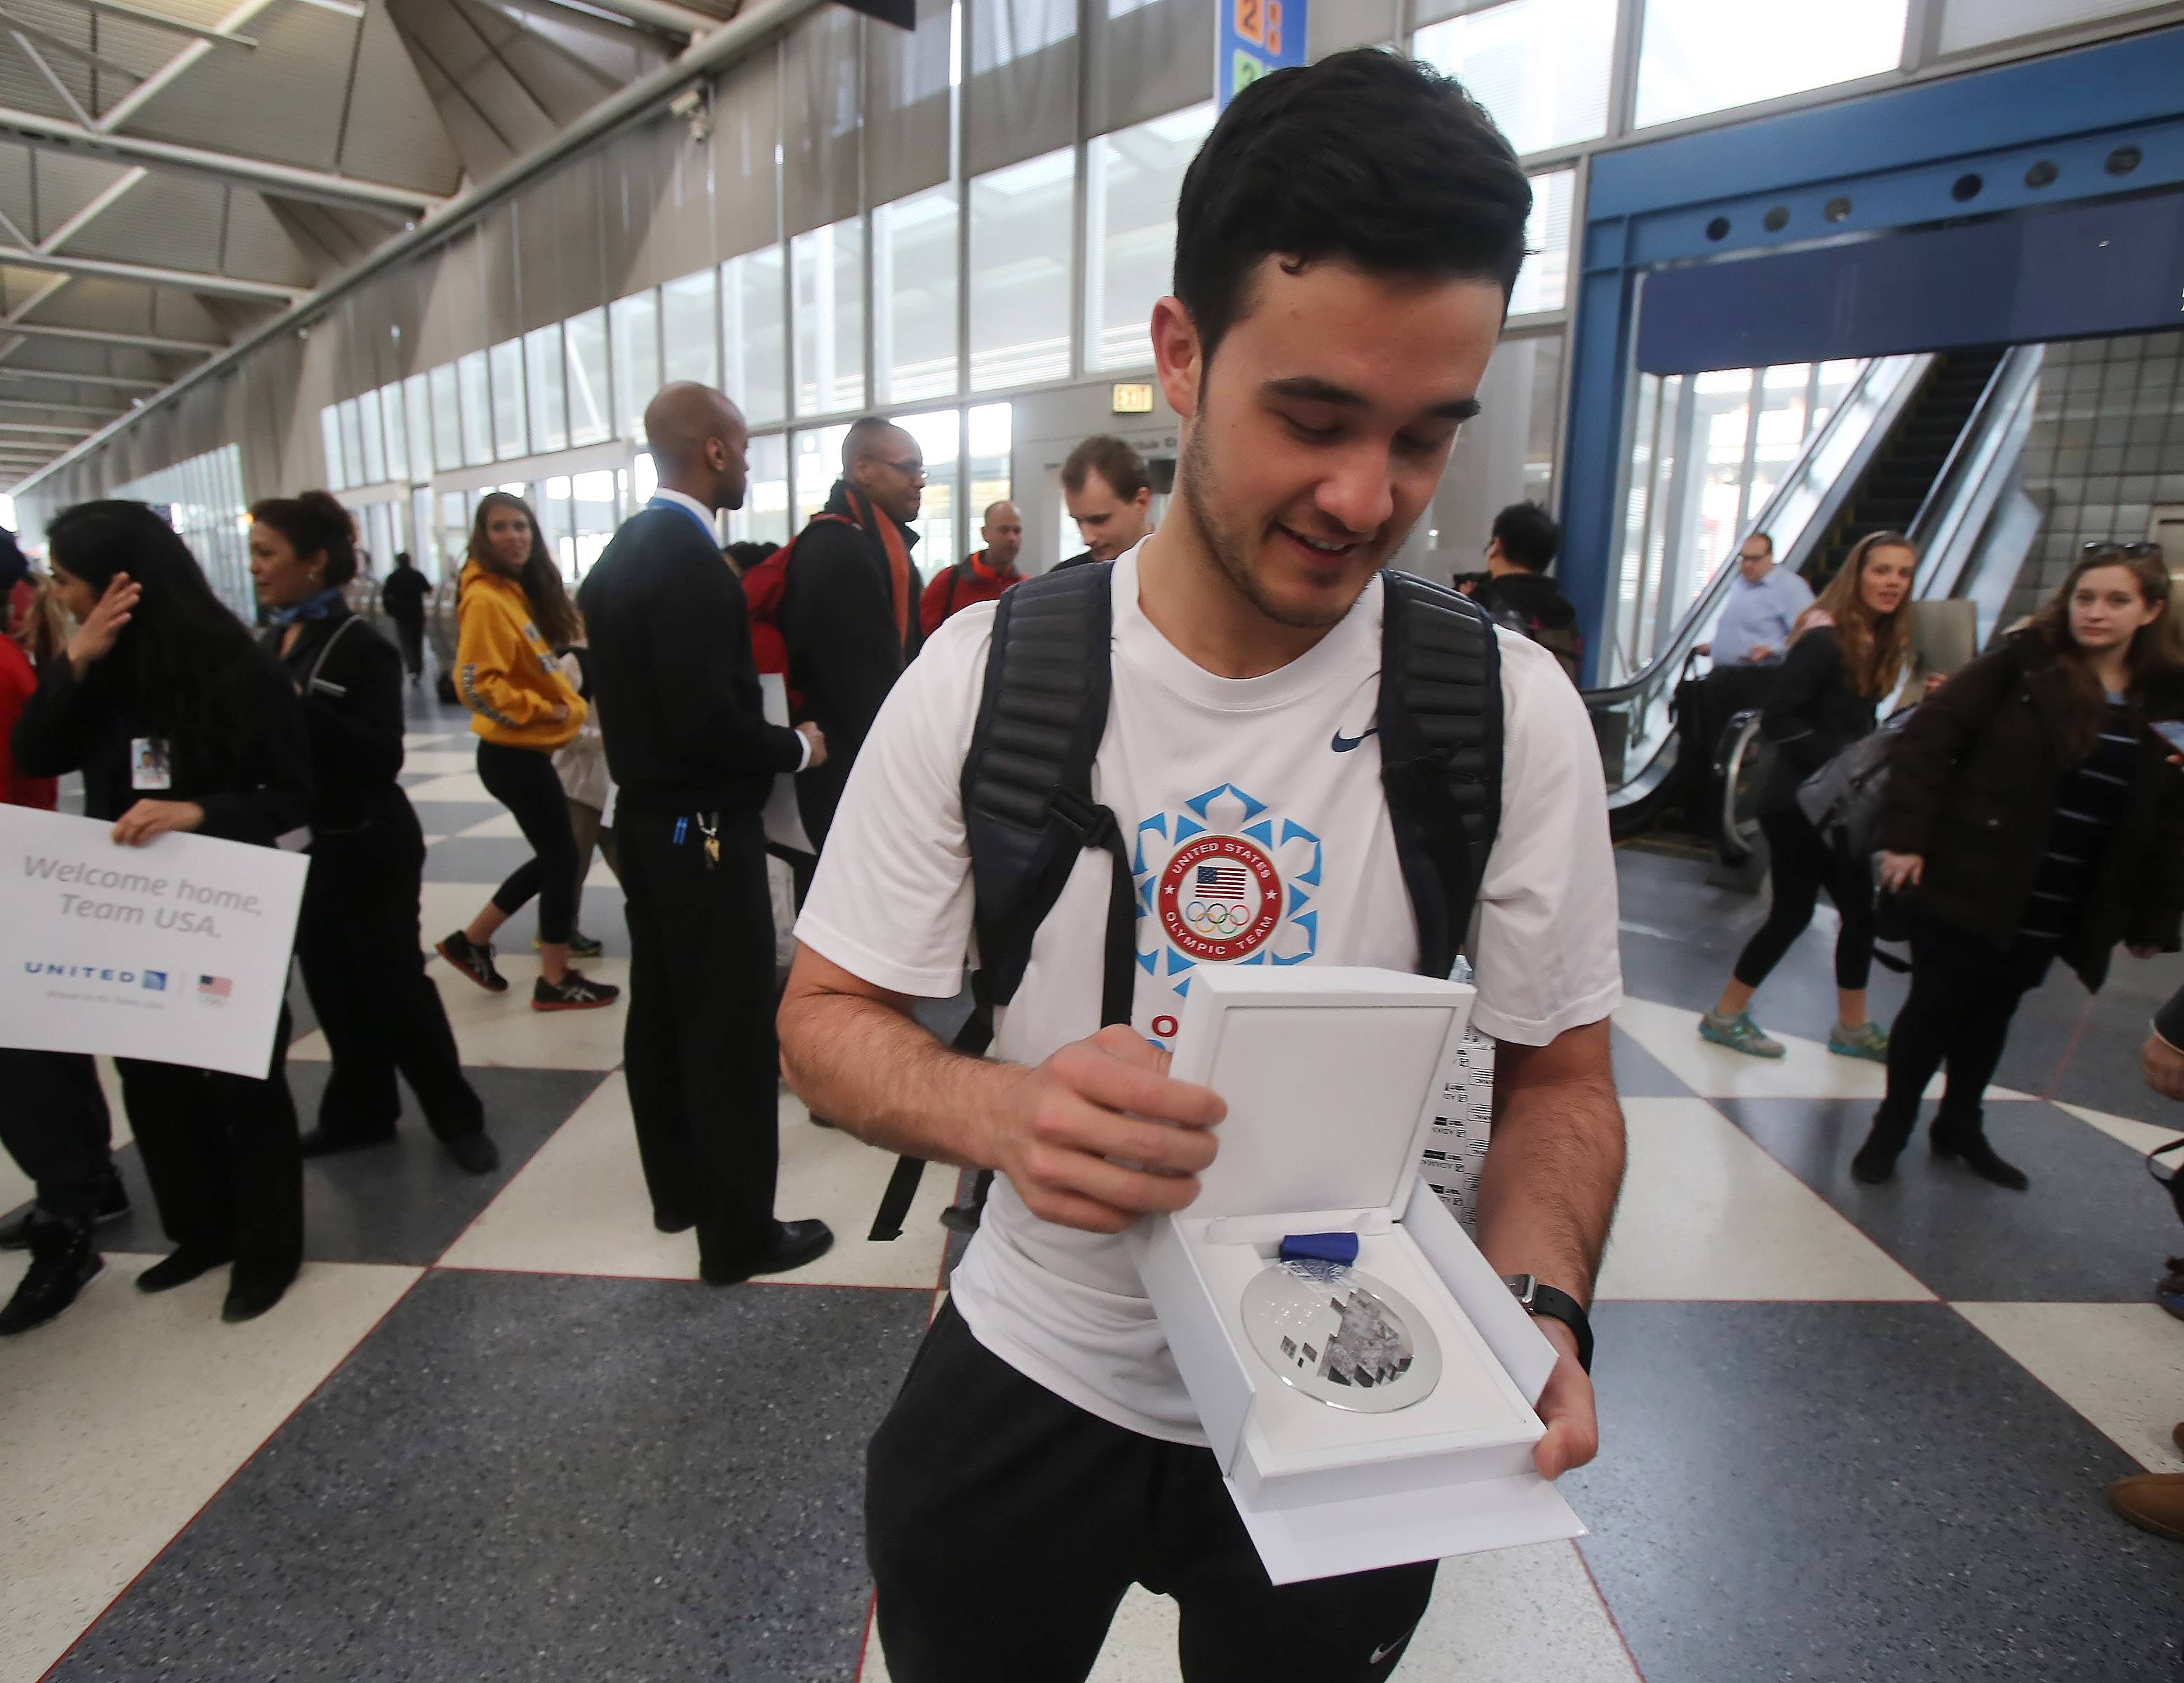 Gilbert R. Boucher II/gboucher@dailyherald.comSpeed skater Eduardo Alvarez shows his silver medal as winter Olympians arrived at Chicago's O'Hare International Airport on Monday after competing in the 2014 Sochi Olympics.